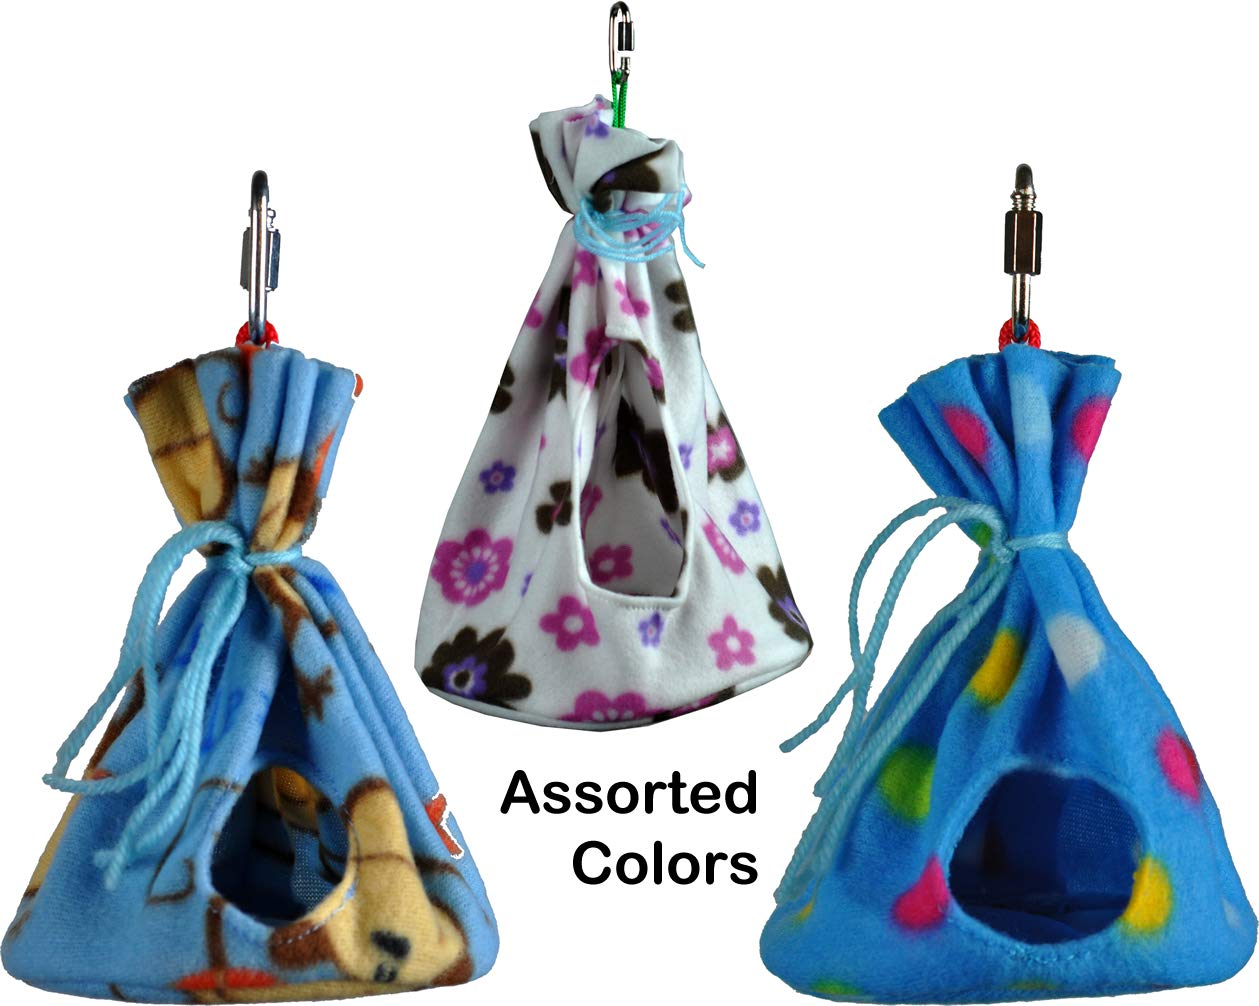 Cozy Sleeper Hideaway / Nesting Pouches for Your Small to Medium-sized Pets (Birds and Mammals) Avianweb